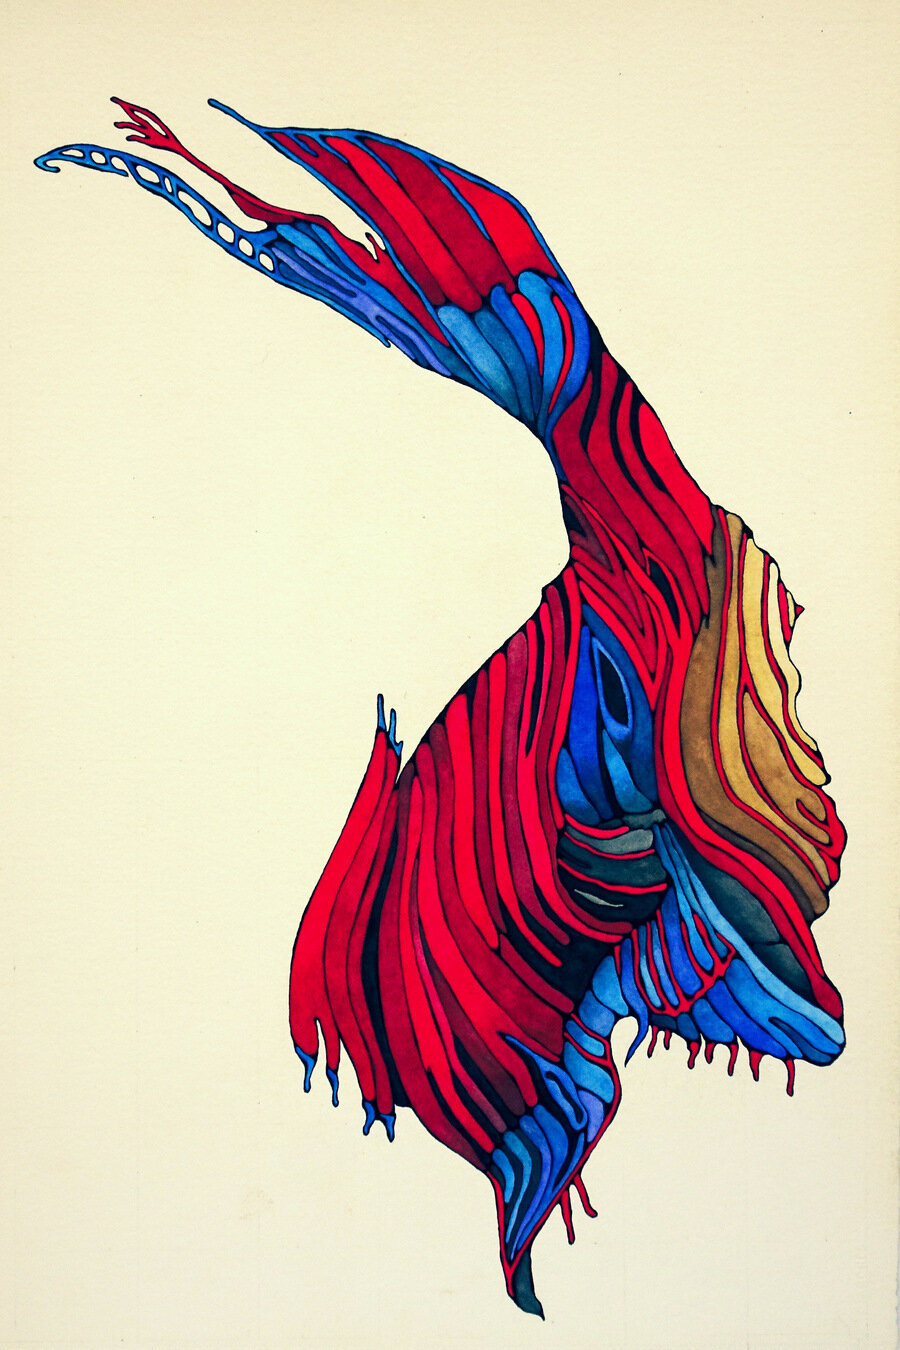 ANTELOPE CANYON ~ SUMMER, watercolor & ink on archival paper, 22 x 15 inches